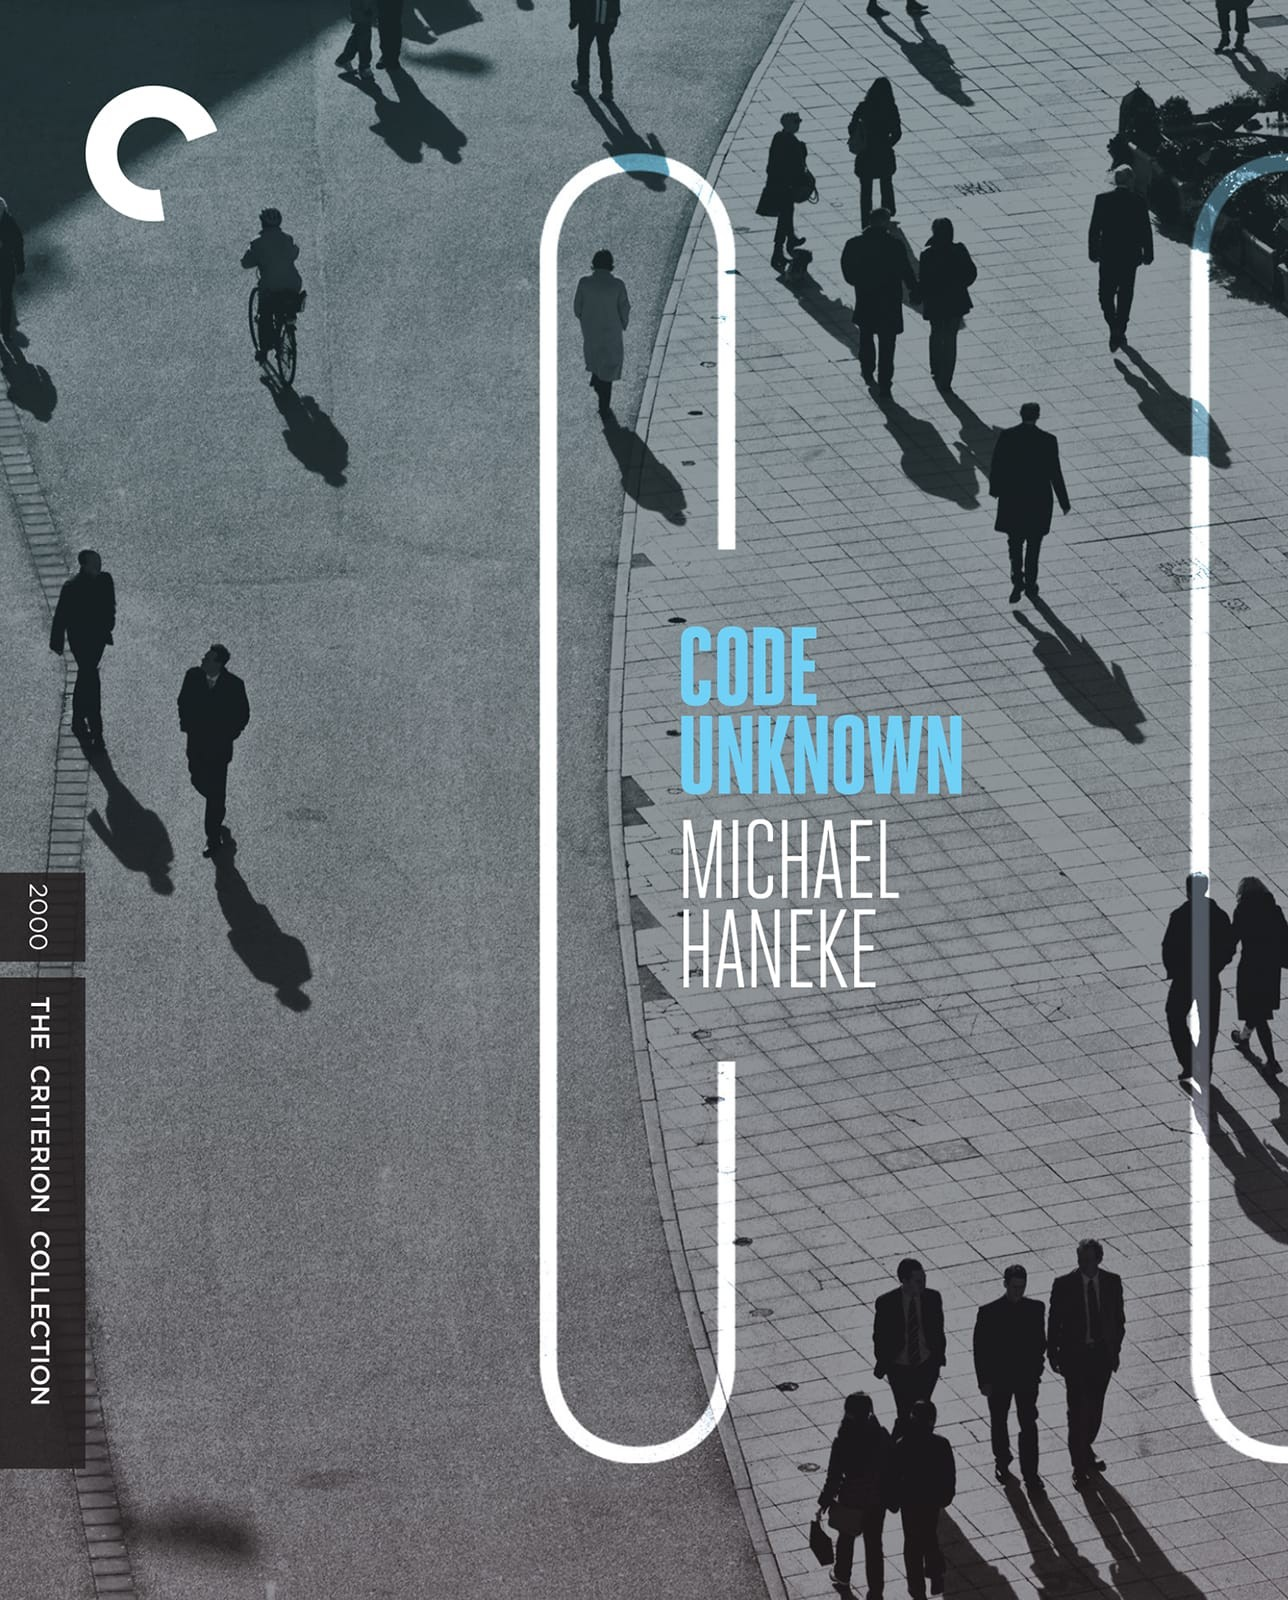 Contrasting Views On Path Screenwriter >> Blu Ray Review Code Unknown Slant Magazine